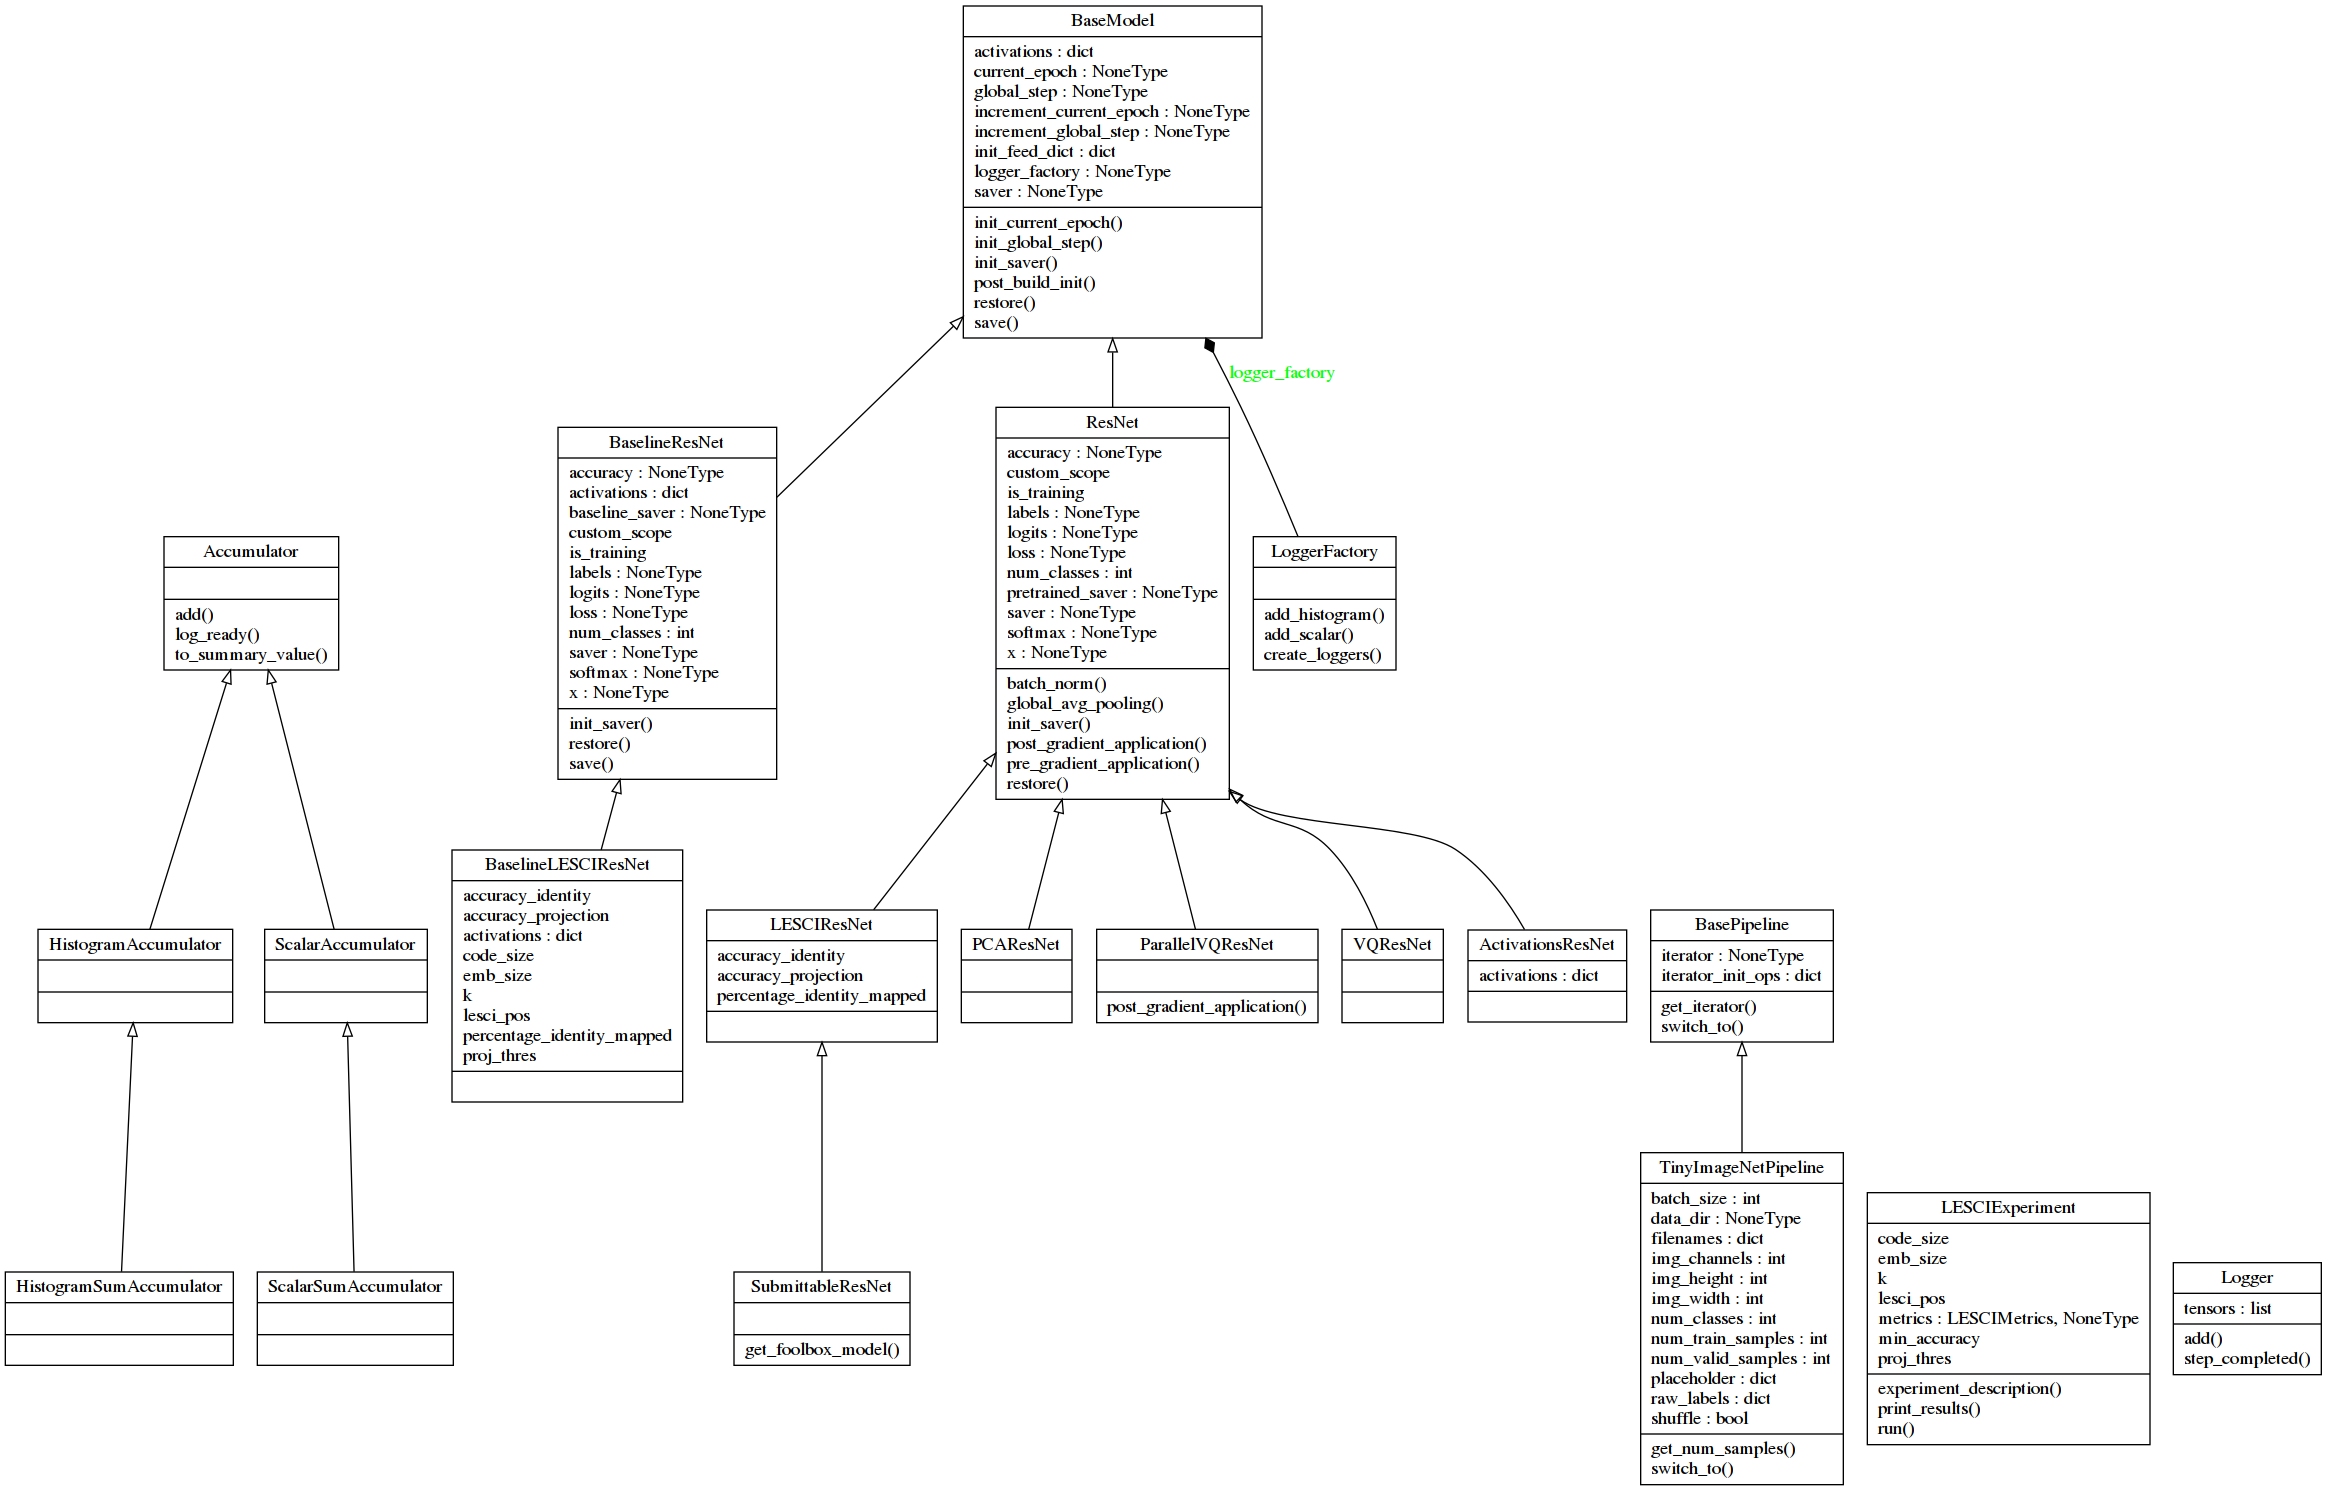 nips_defense class diagram